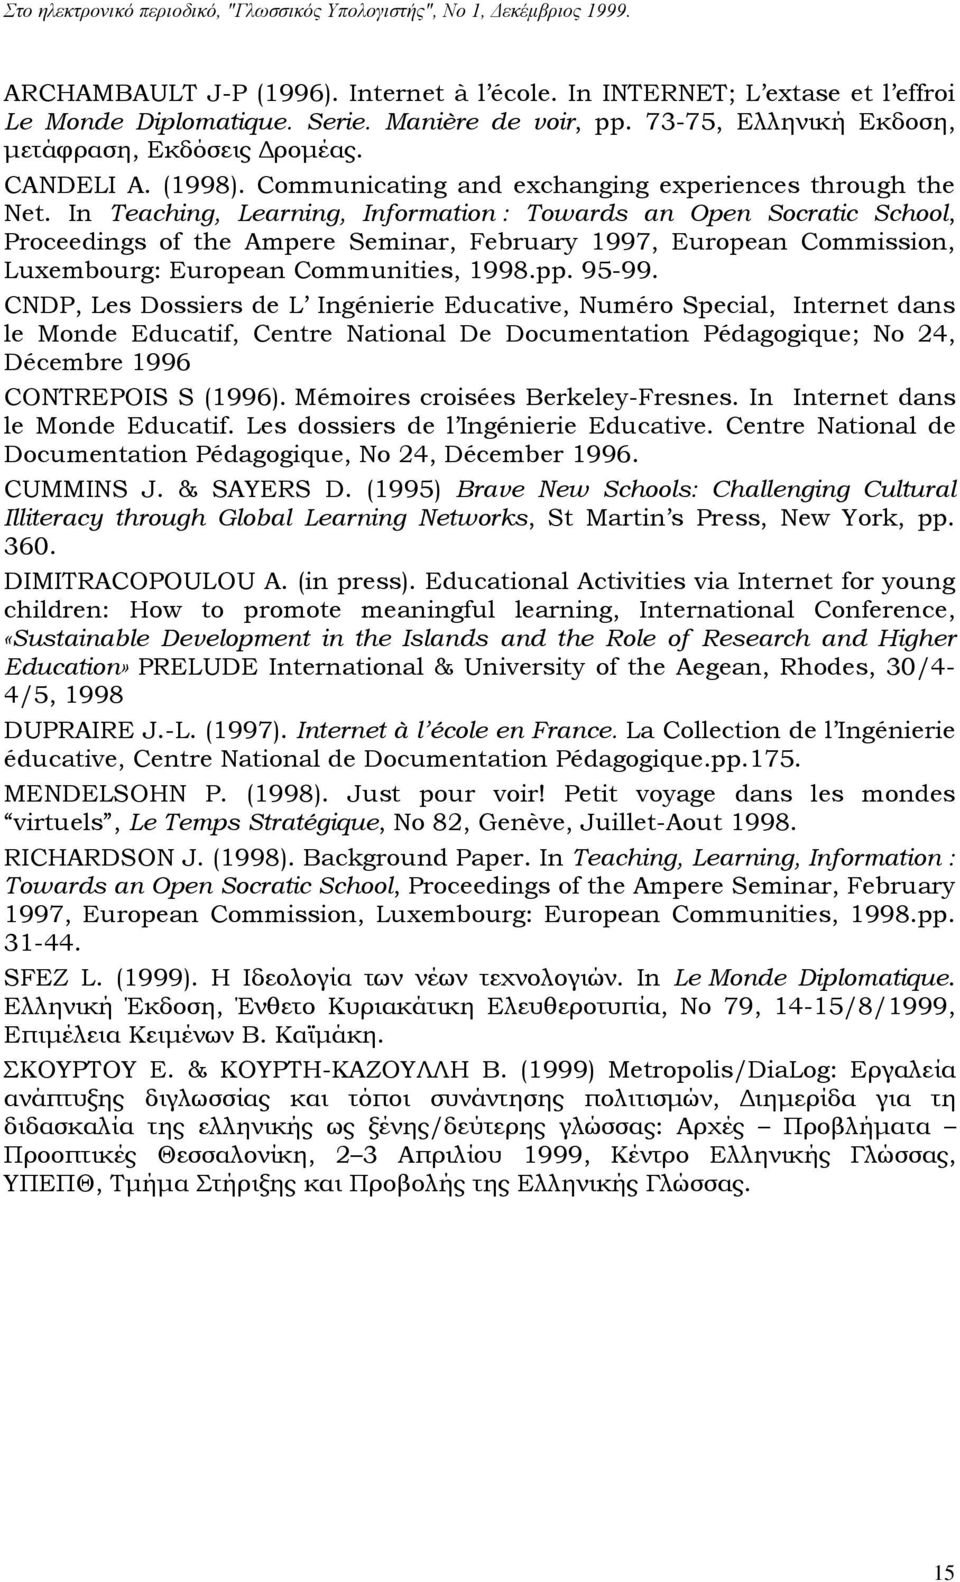 In Teaching, Learning, Information : Towards an Open Socratic School, Proceedings of the Ampere Seminar, February 1997, European Commission, Luxembourg: European Communities, 1998.pp. 95-99.